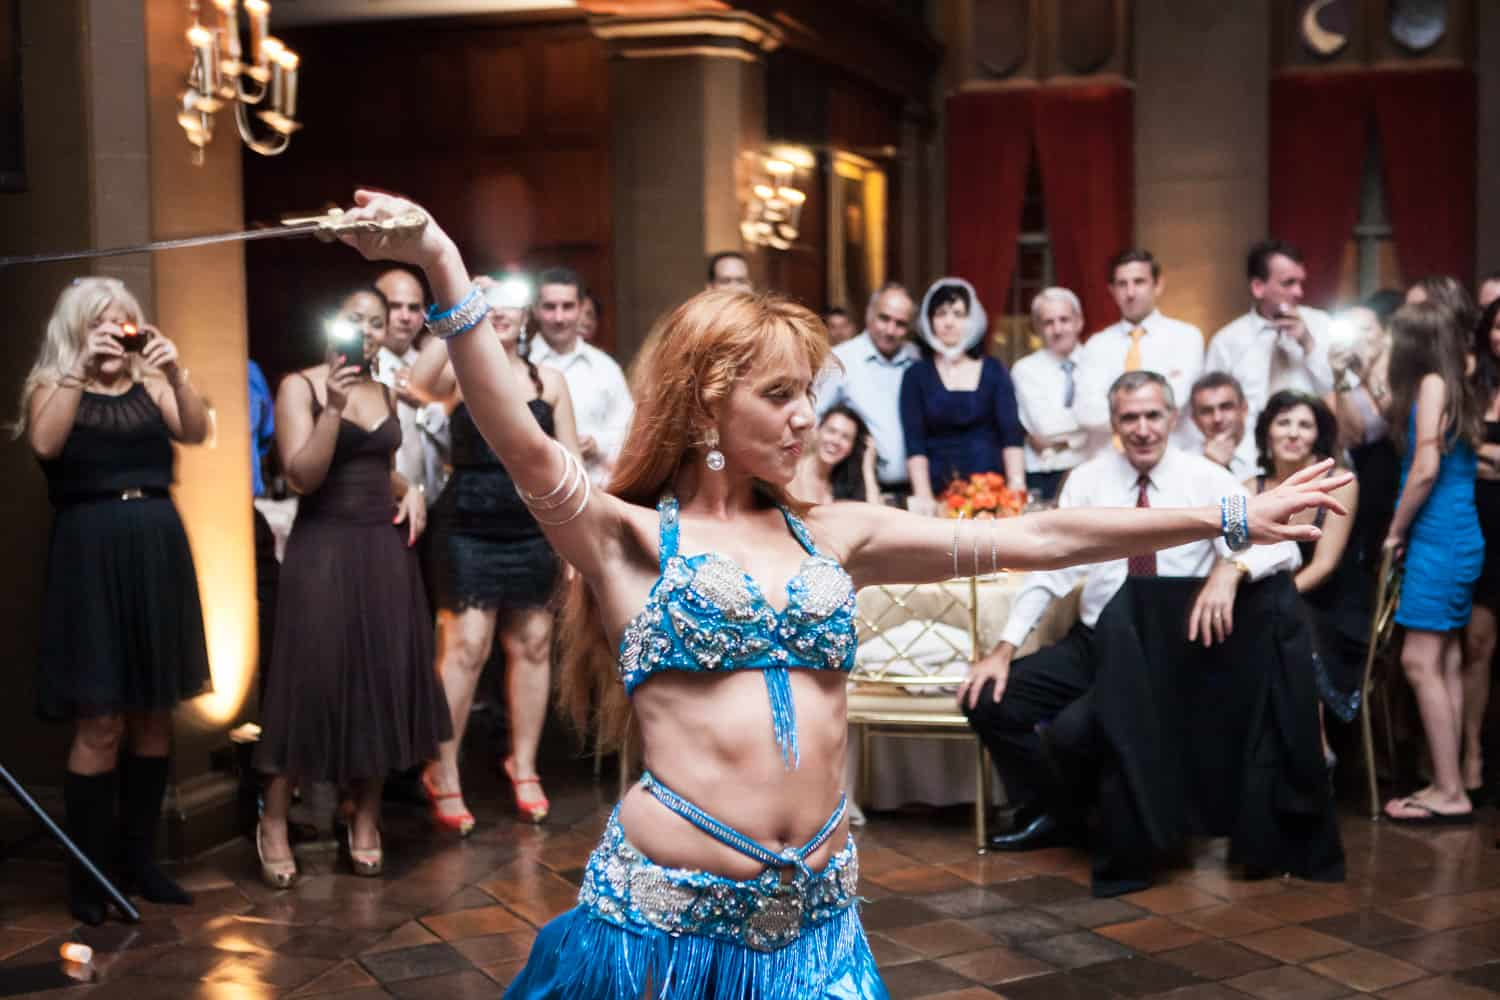 Belly dancer swinging sword at a Harvard Club wedding